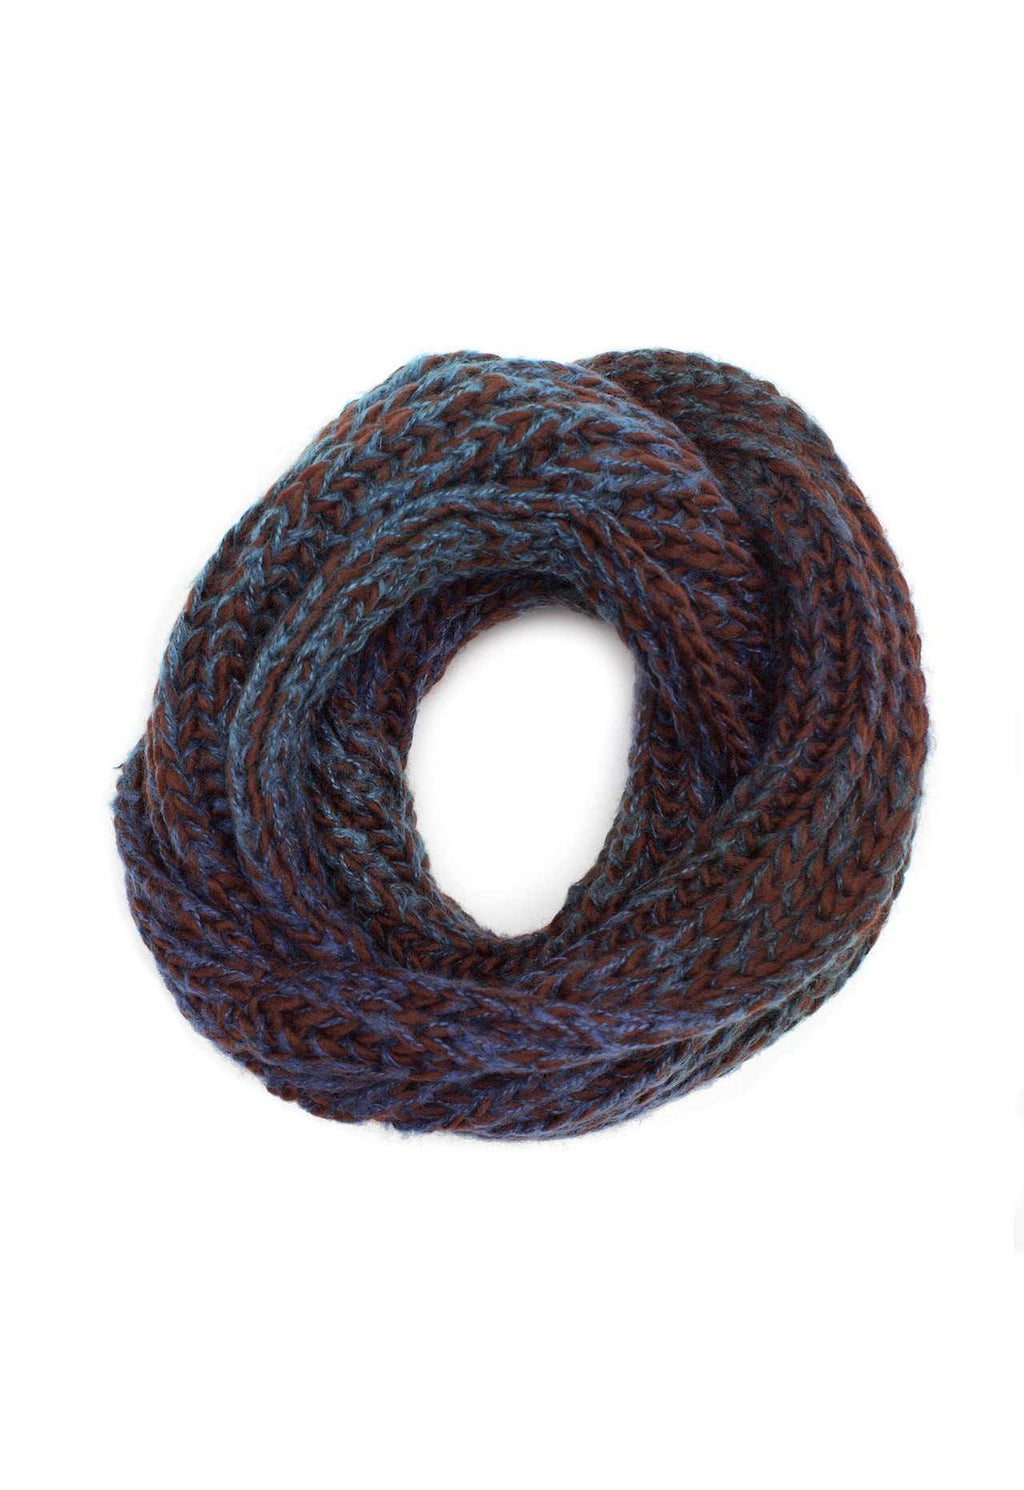 Accessories - Enchanted Embrace Knit Scarf - Brown